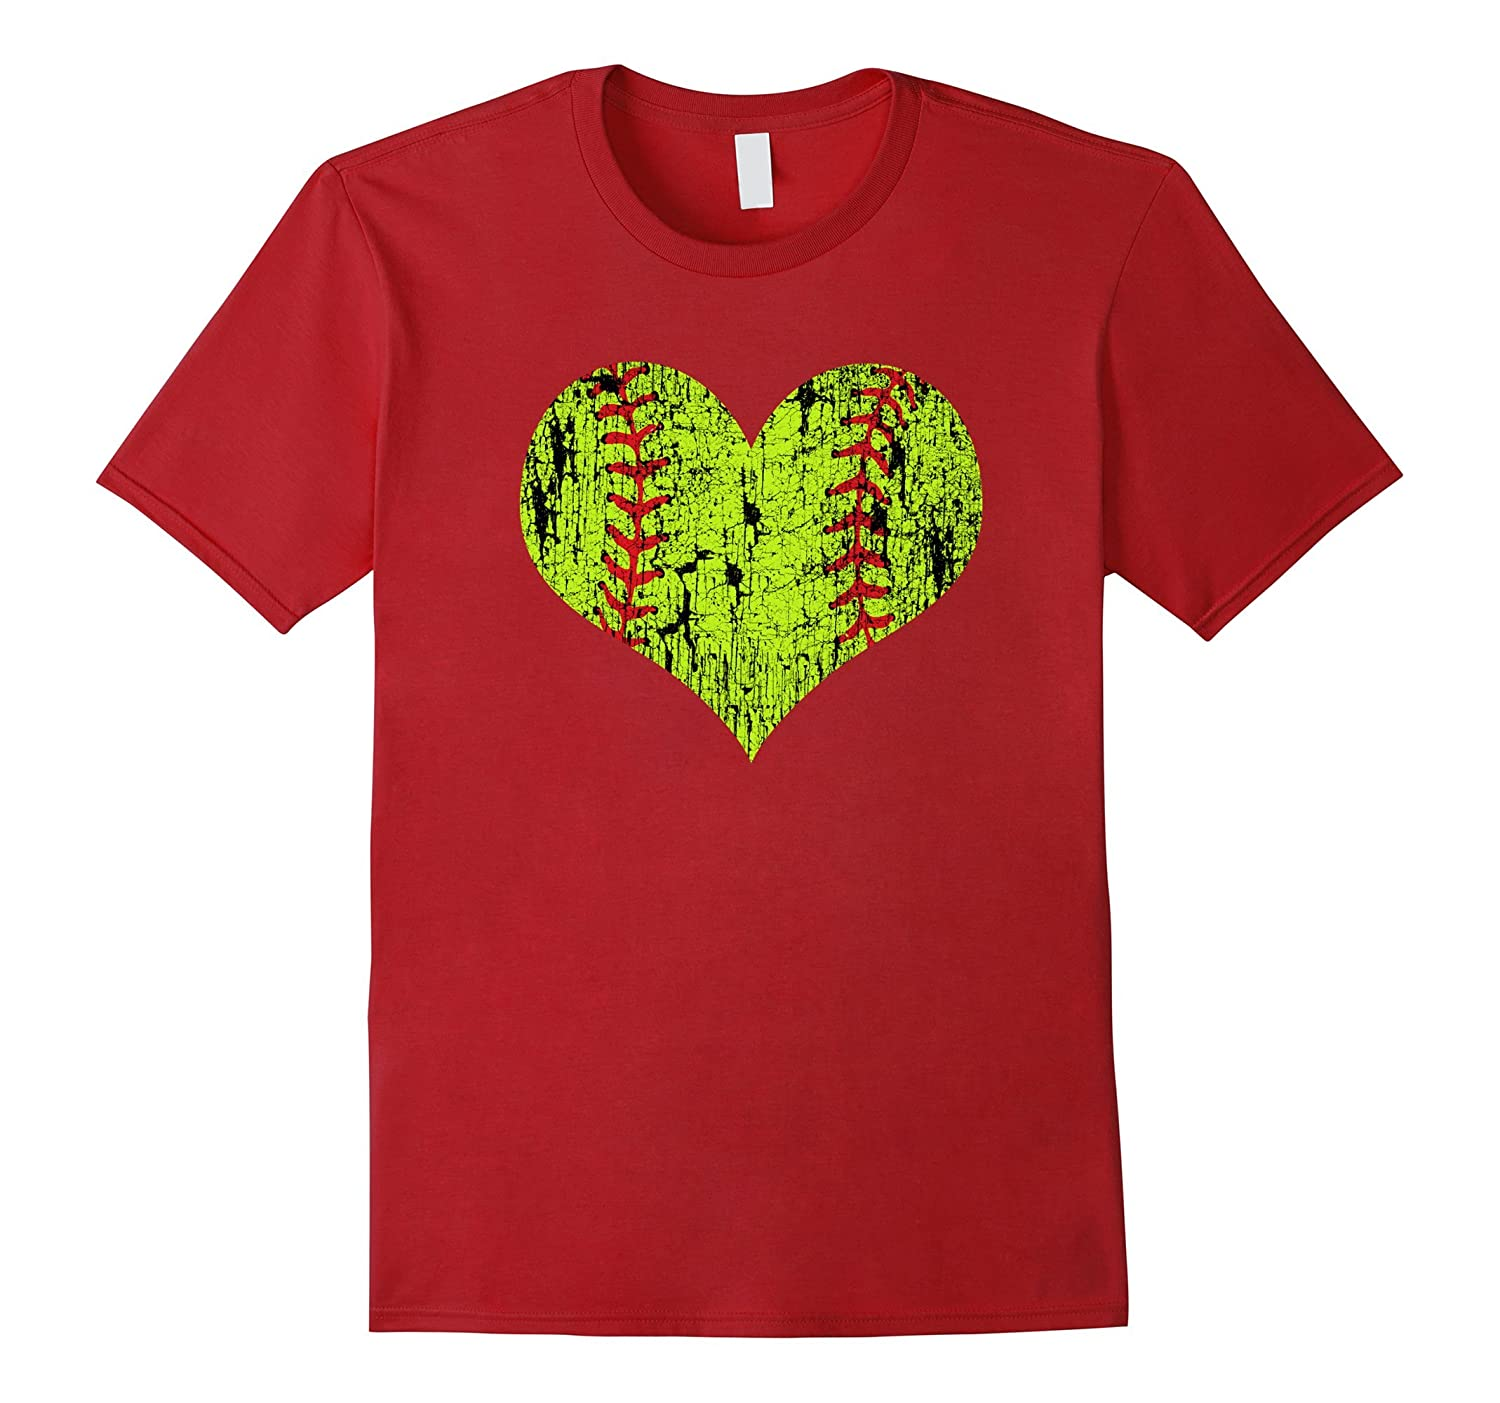 Distressed Love Softball Heart T-Shirt for Girls and Moms-TD